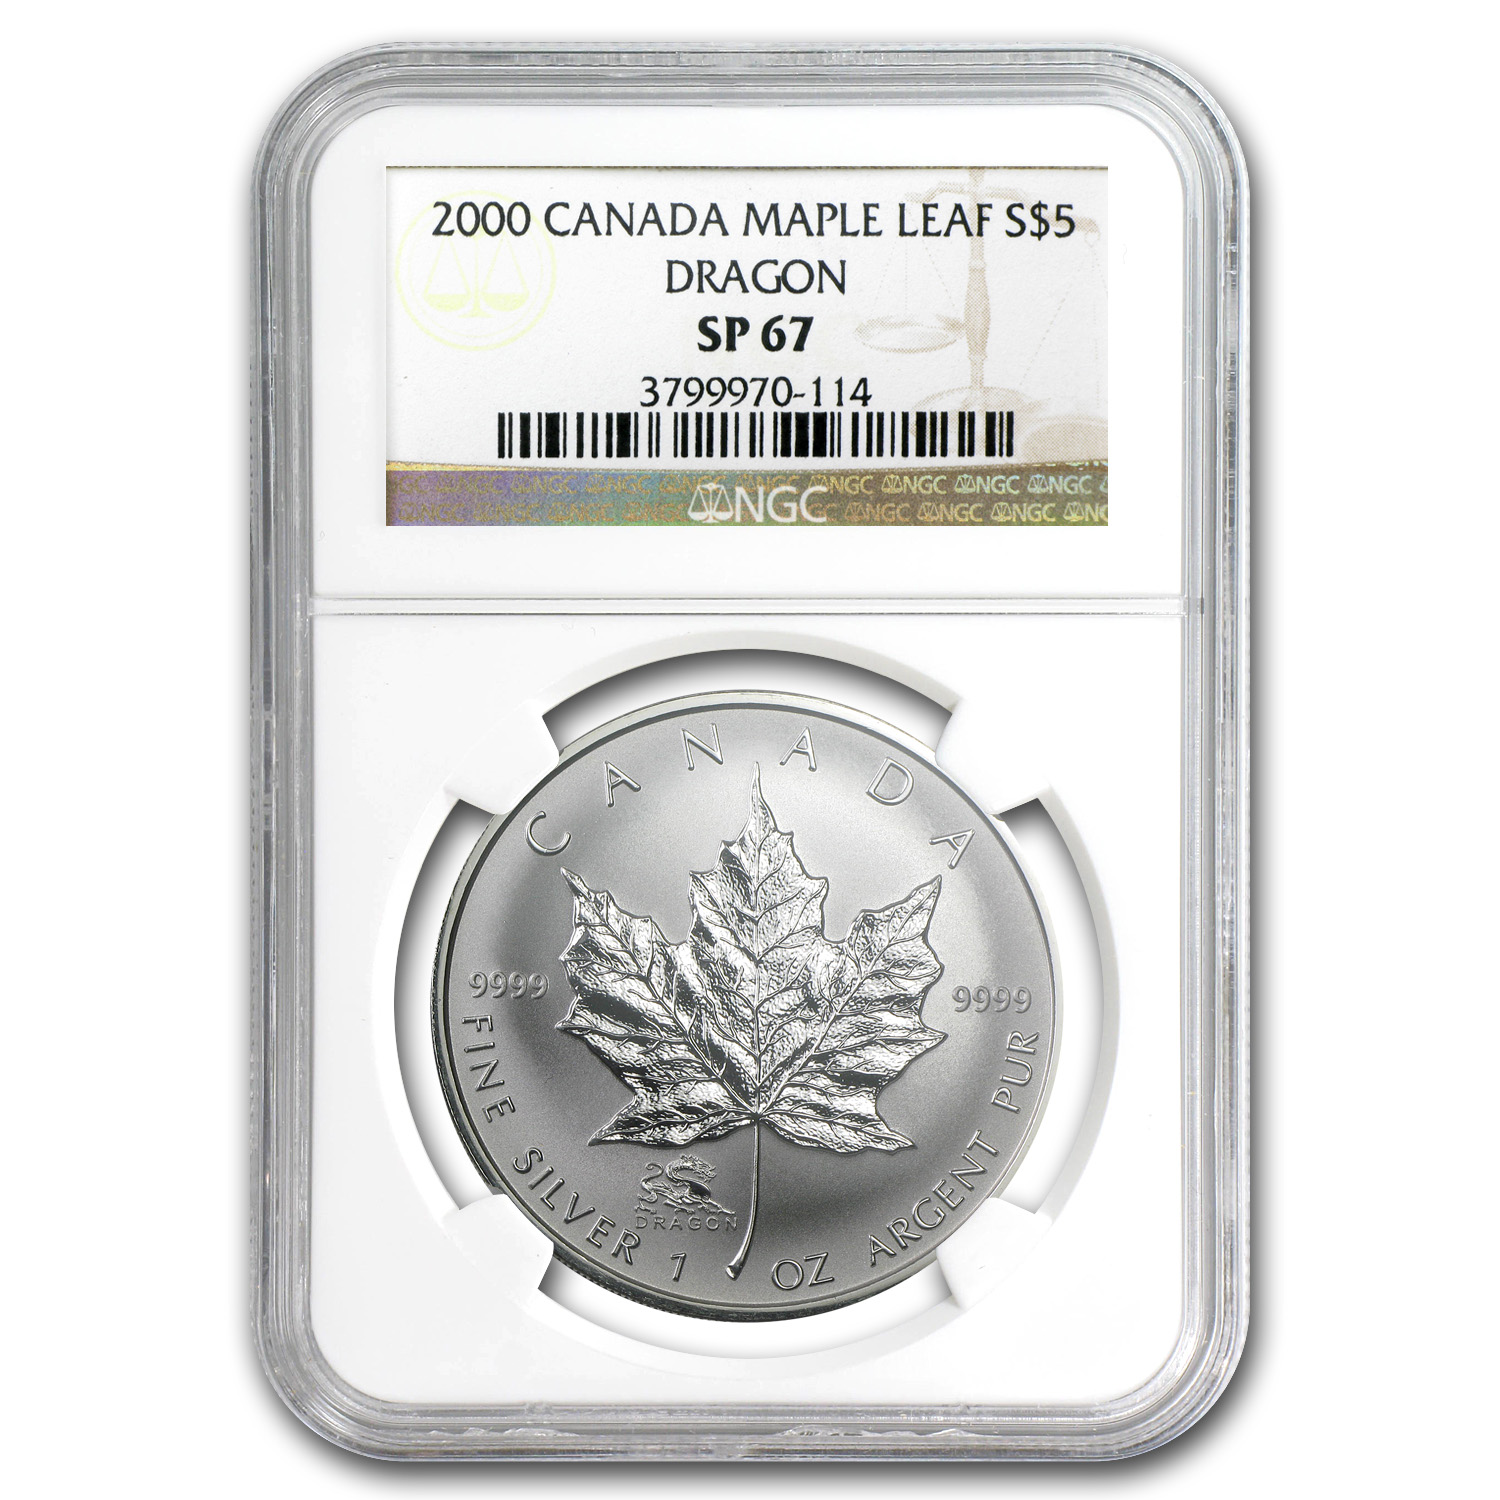 2000 1 oz Silver Canadian Maple Leaf Dragon Privy - SP-67 NGC